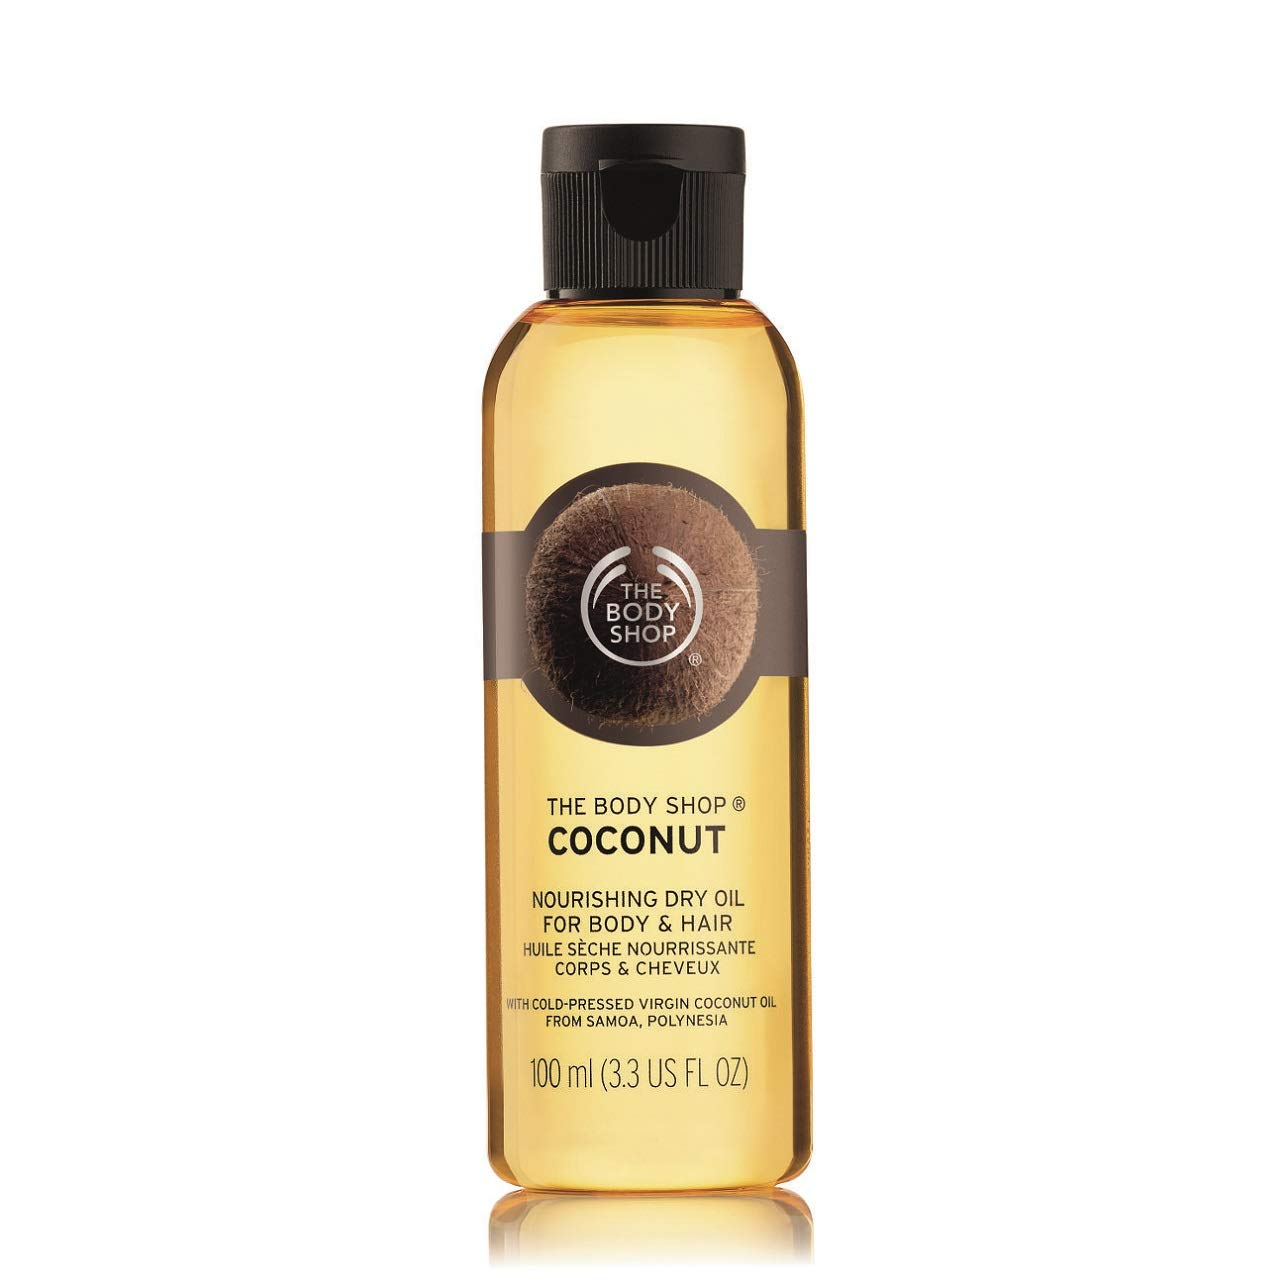 The Body Shop Coconut Nourishing Dry Oil for Body & Hair, 3.3 Fl. Oz.